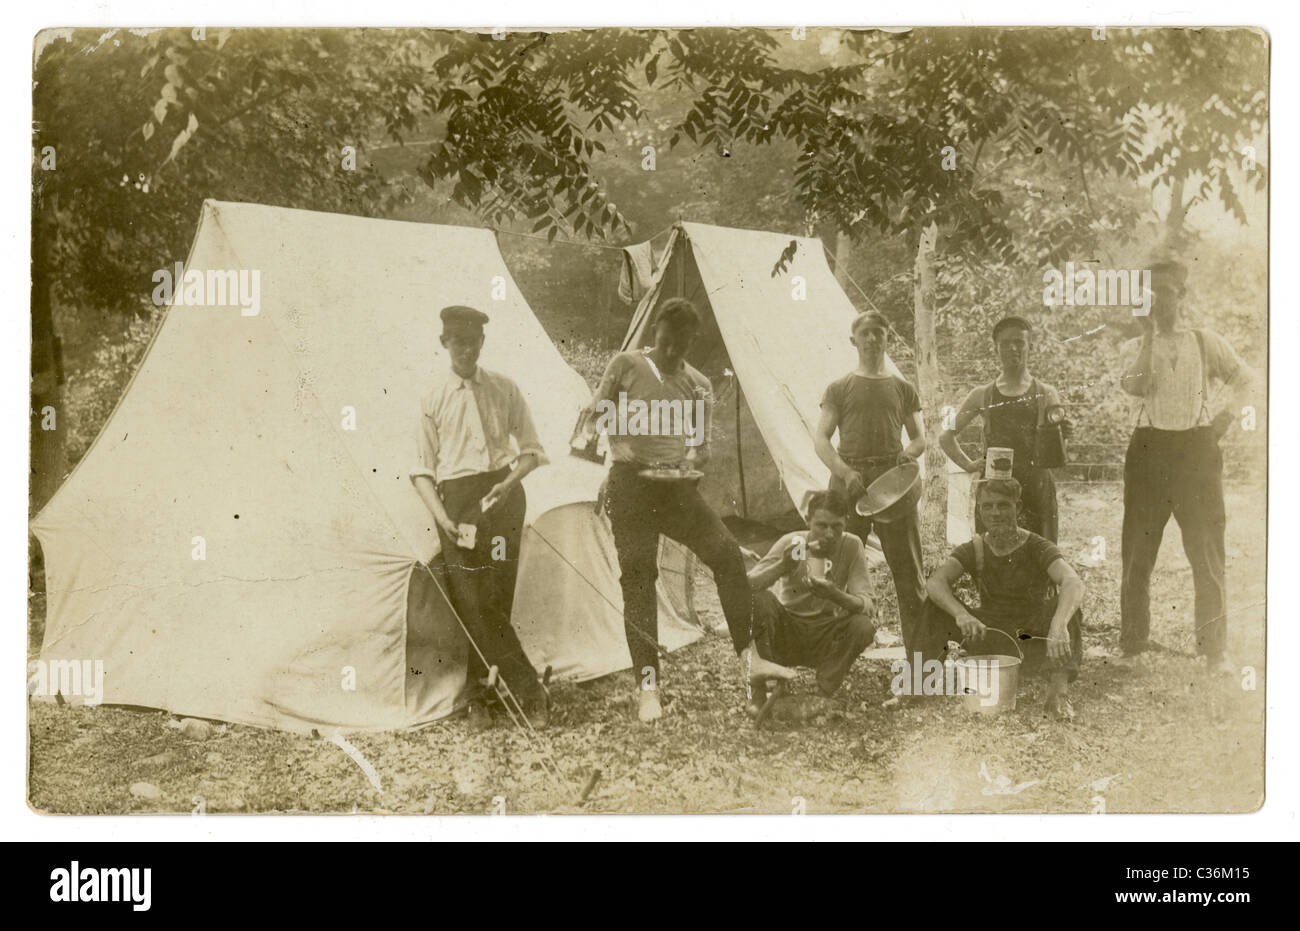 Circa 1910s real-photo post card showing a group of 7 men camping. - Stock Image